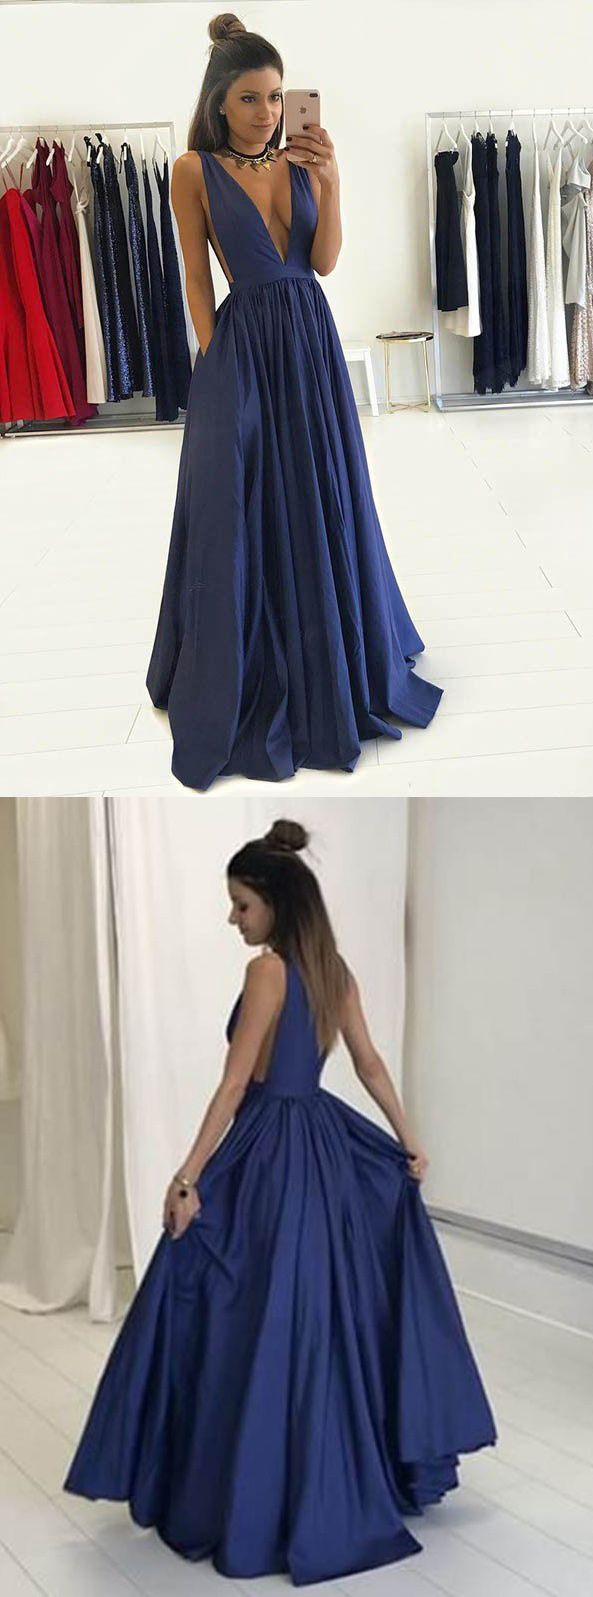 Aline deep vneck long dark blue taffeta prom dress with pleats